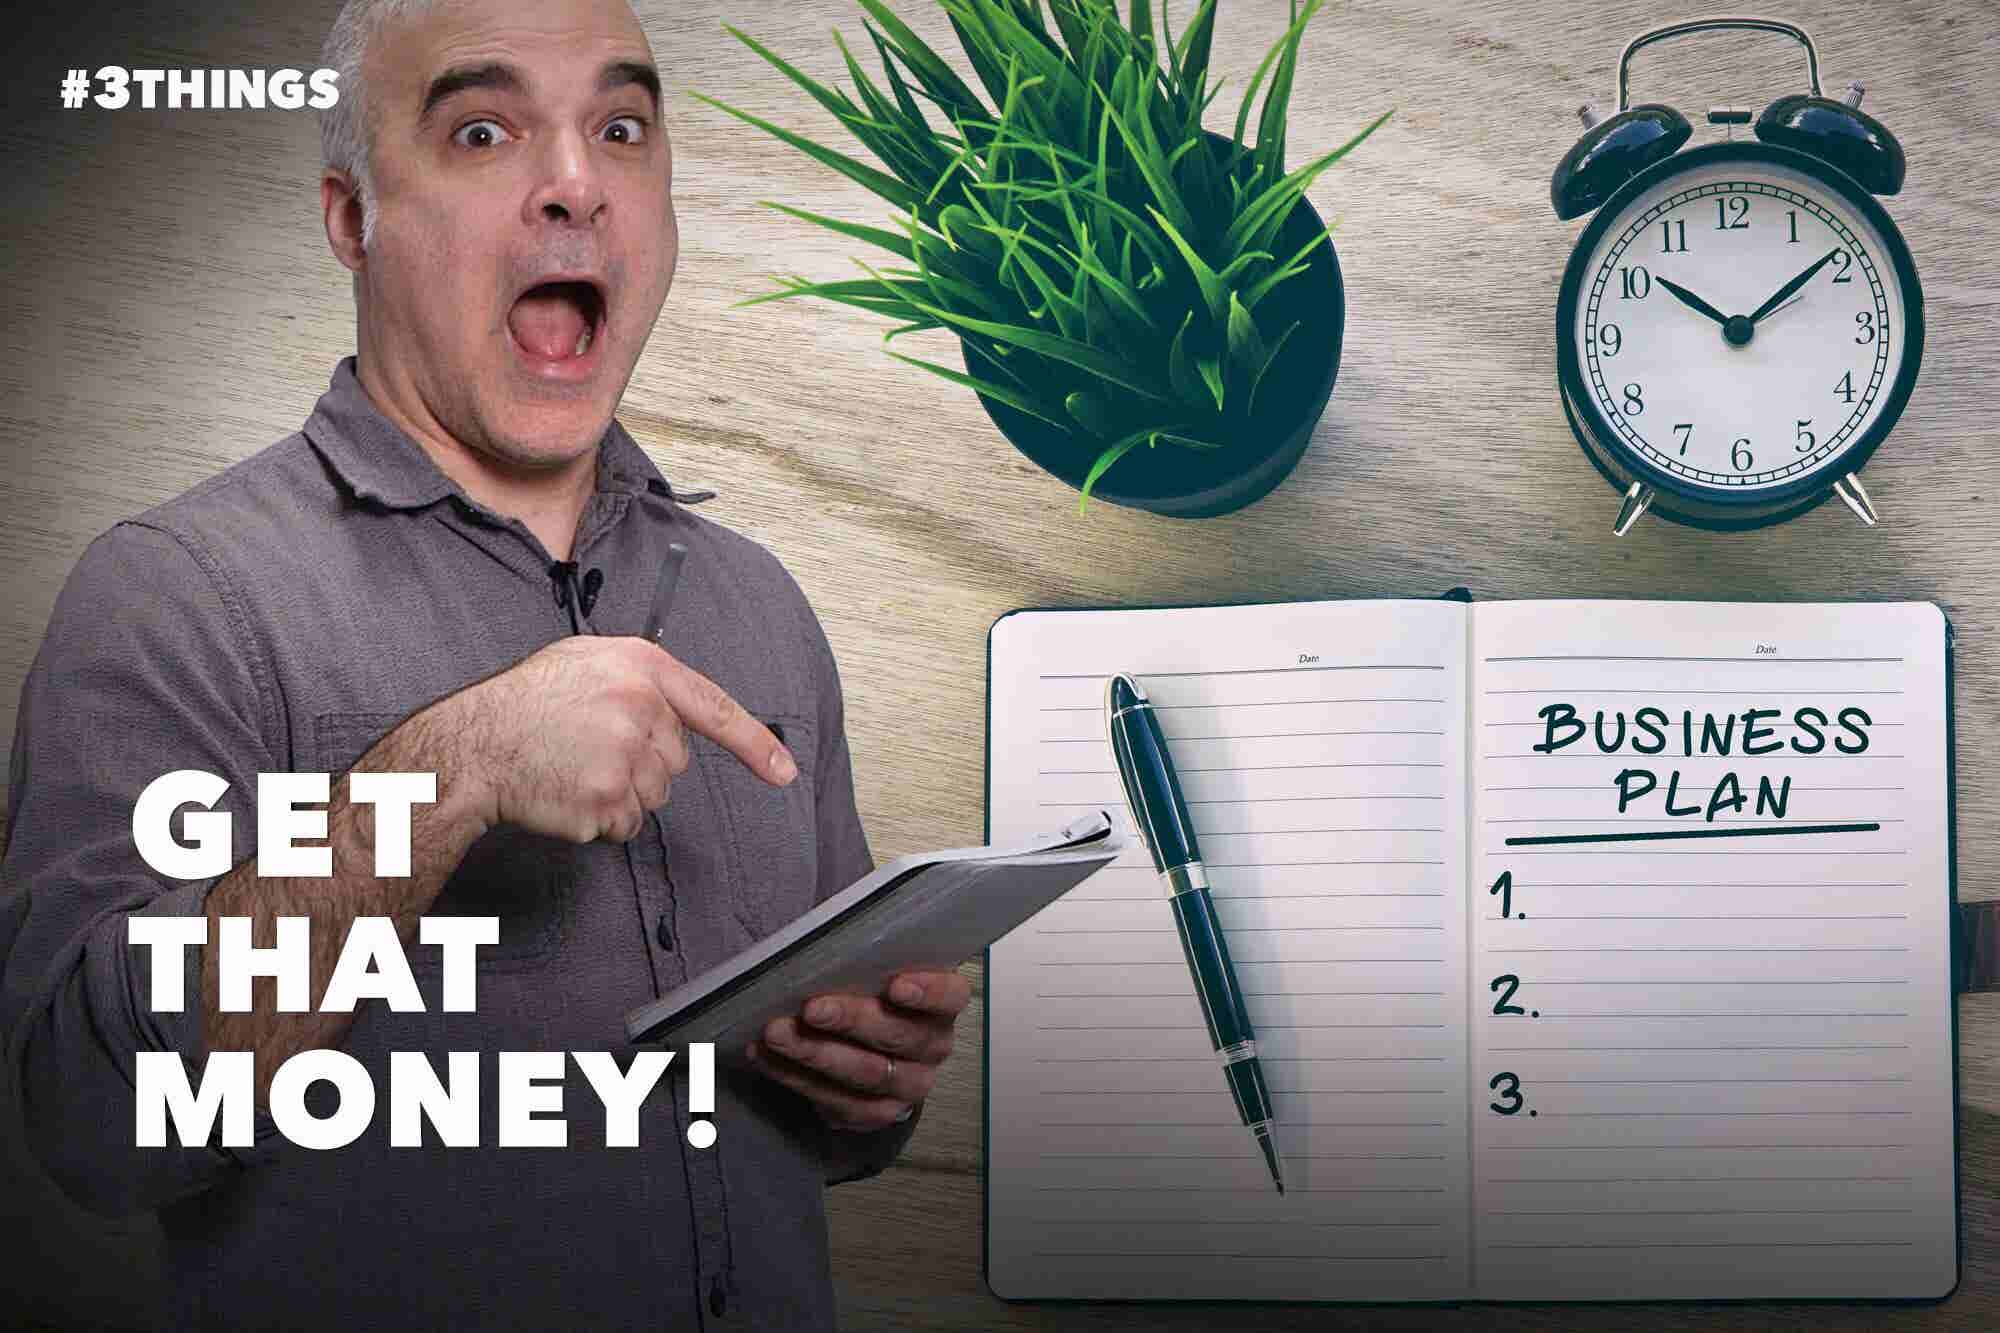 Turn Your Business Plan Into Money!